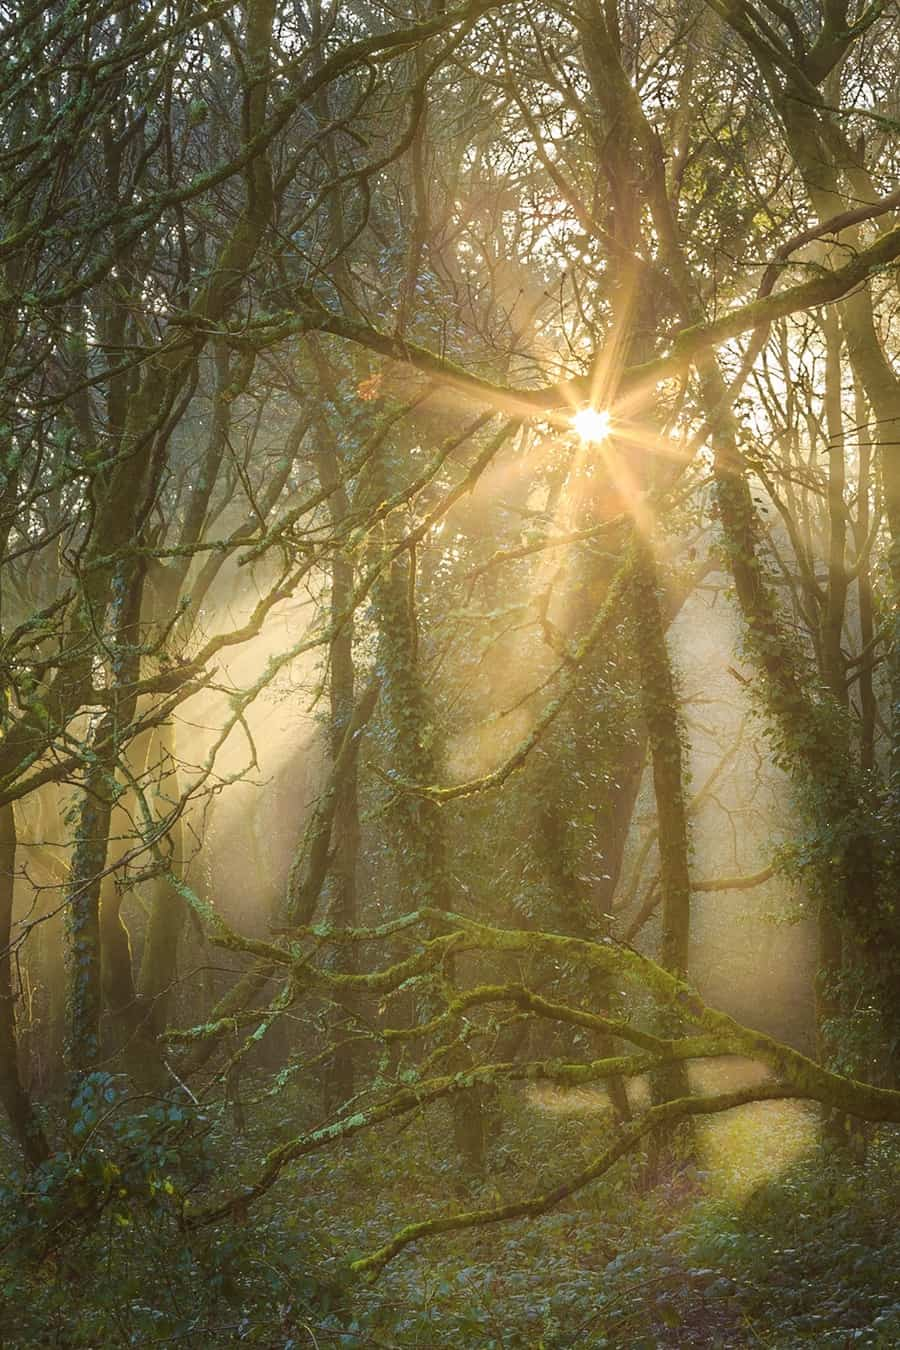 Mysterious woods by Rick McEvoy Dorset Photographer